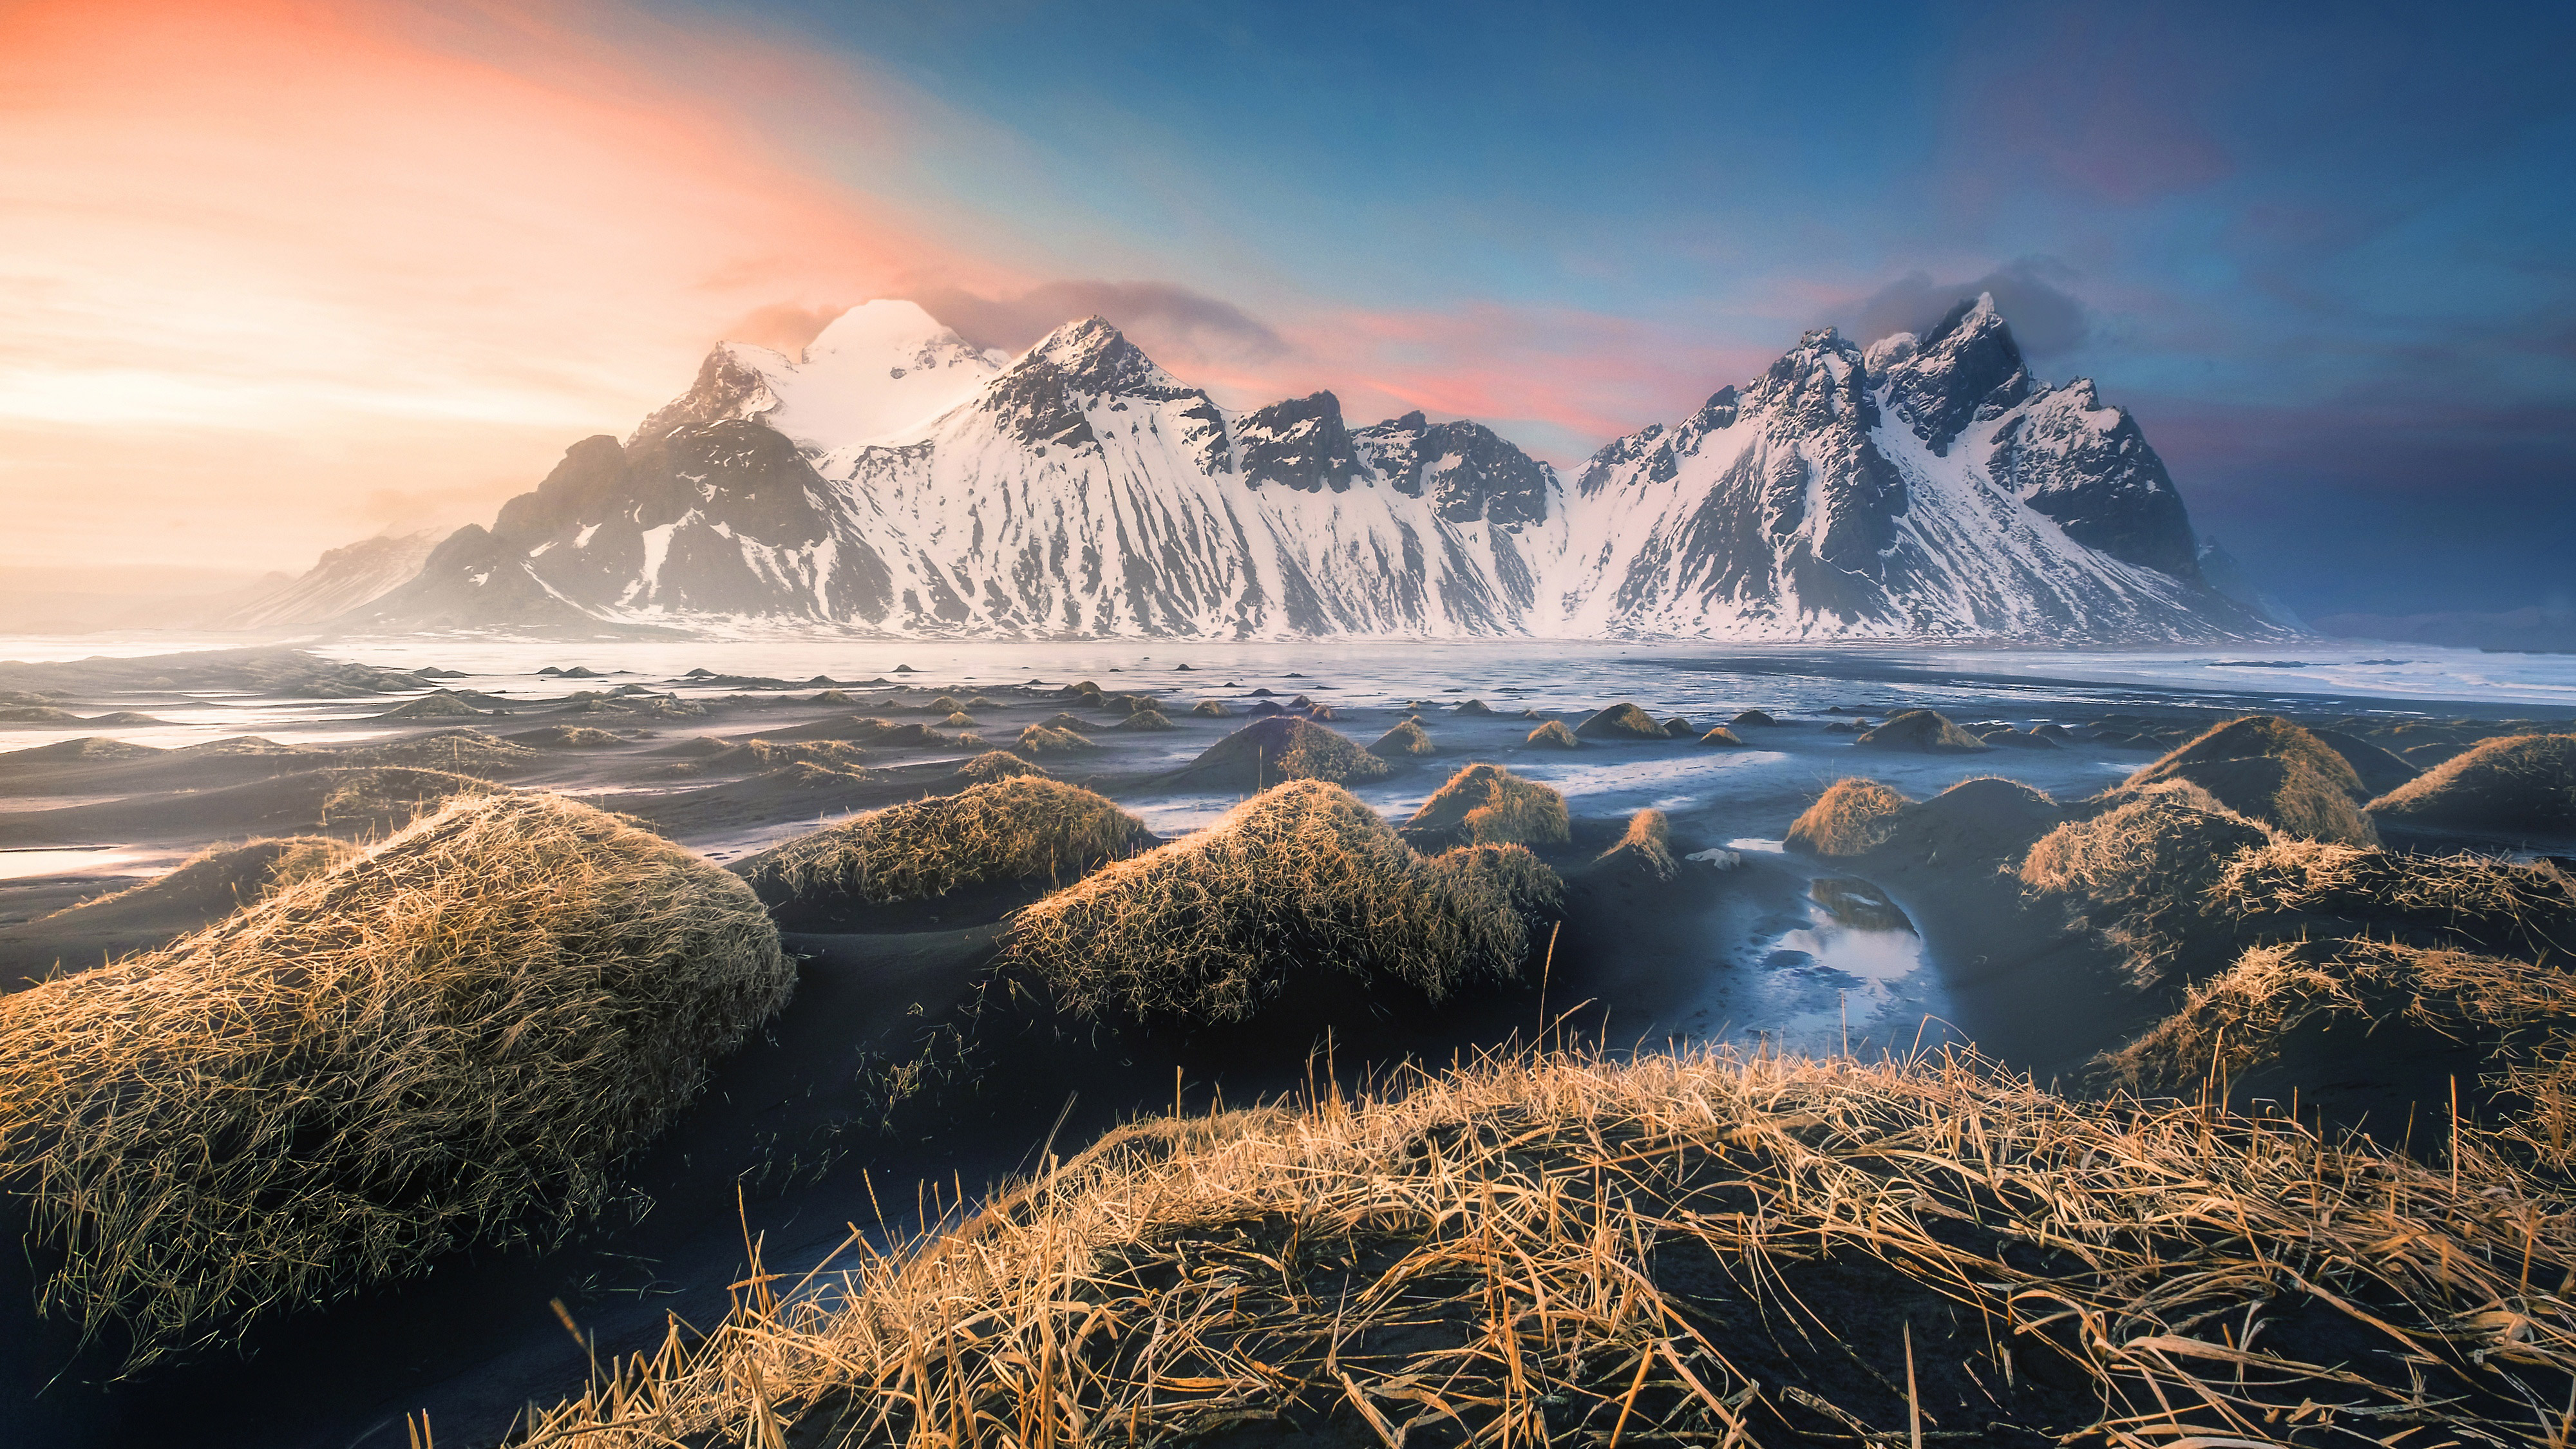 mountains iceland 4k hd nature 4k wallpapers images backgrounds